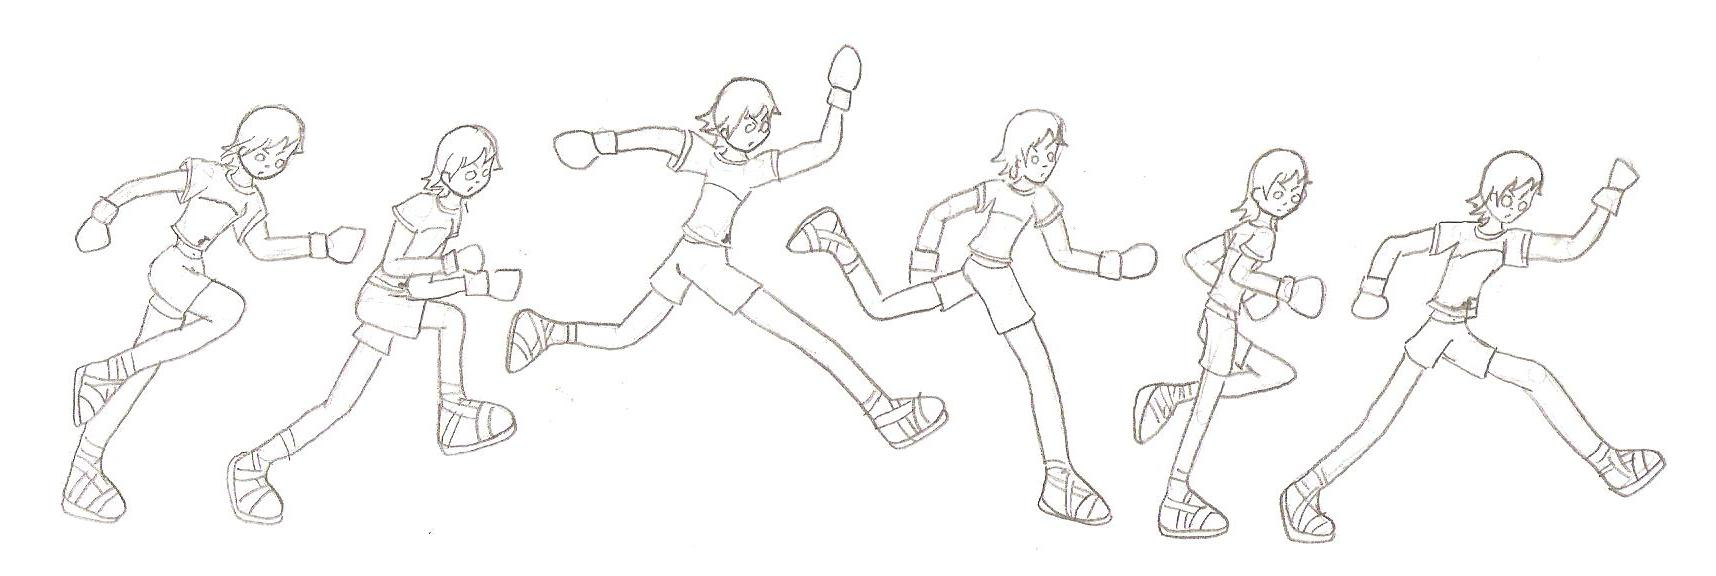 Running animation frames by Toxicated-kisame52 on DeviantArt